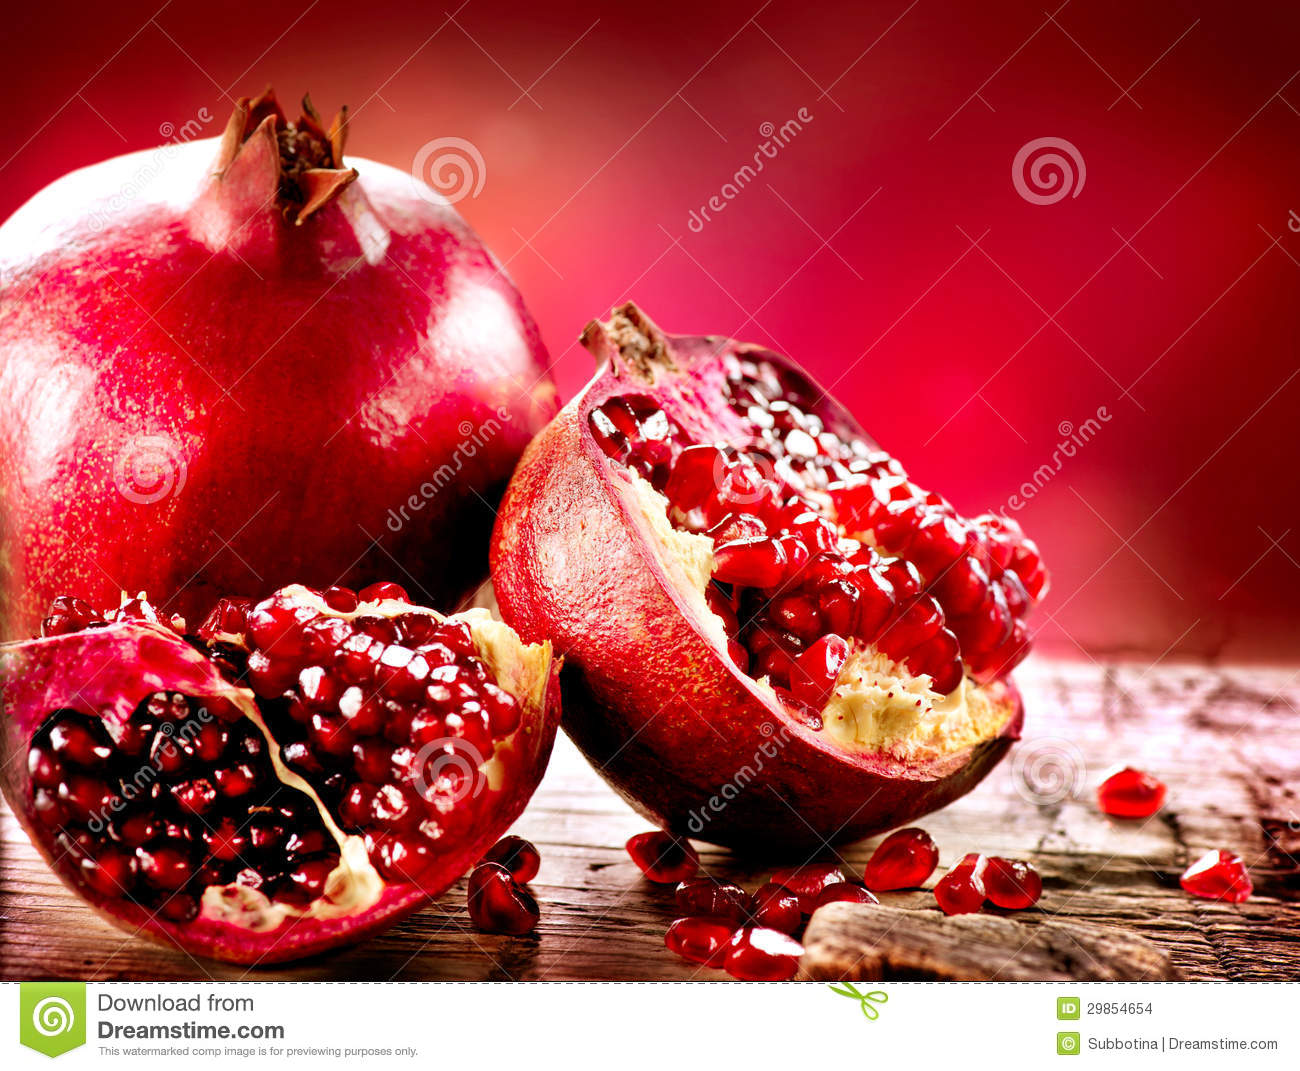 Pomegranates over Red Background